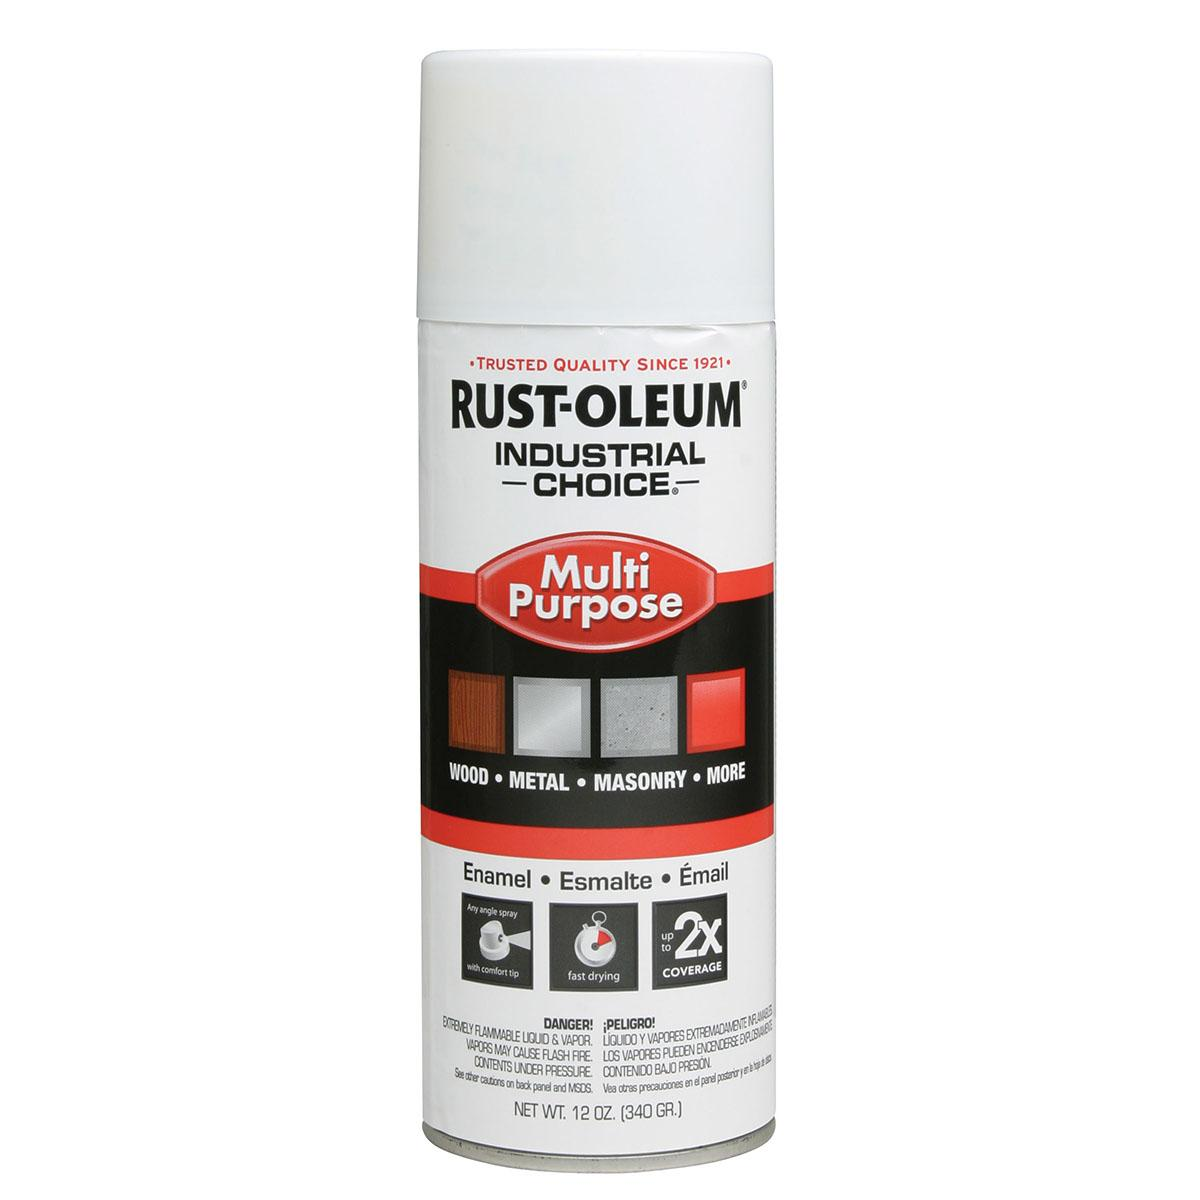 Rust-Oleum Spray Paint: White, Gloss, 1 hr Dry Time, 12 to 15 sq ft, 12 fl oz Container Size